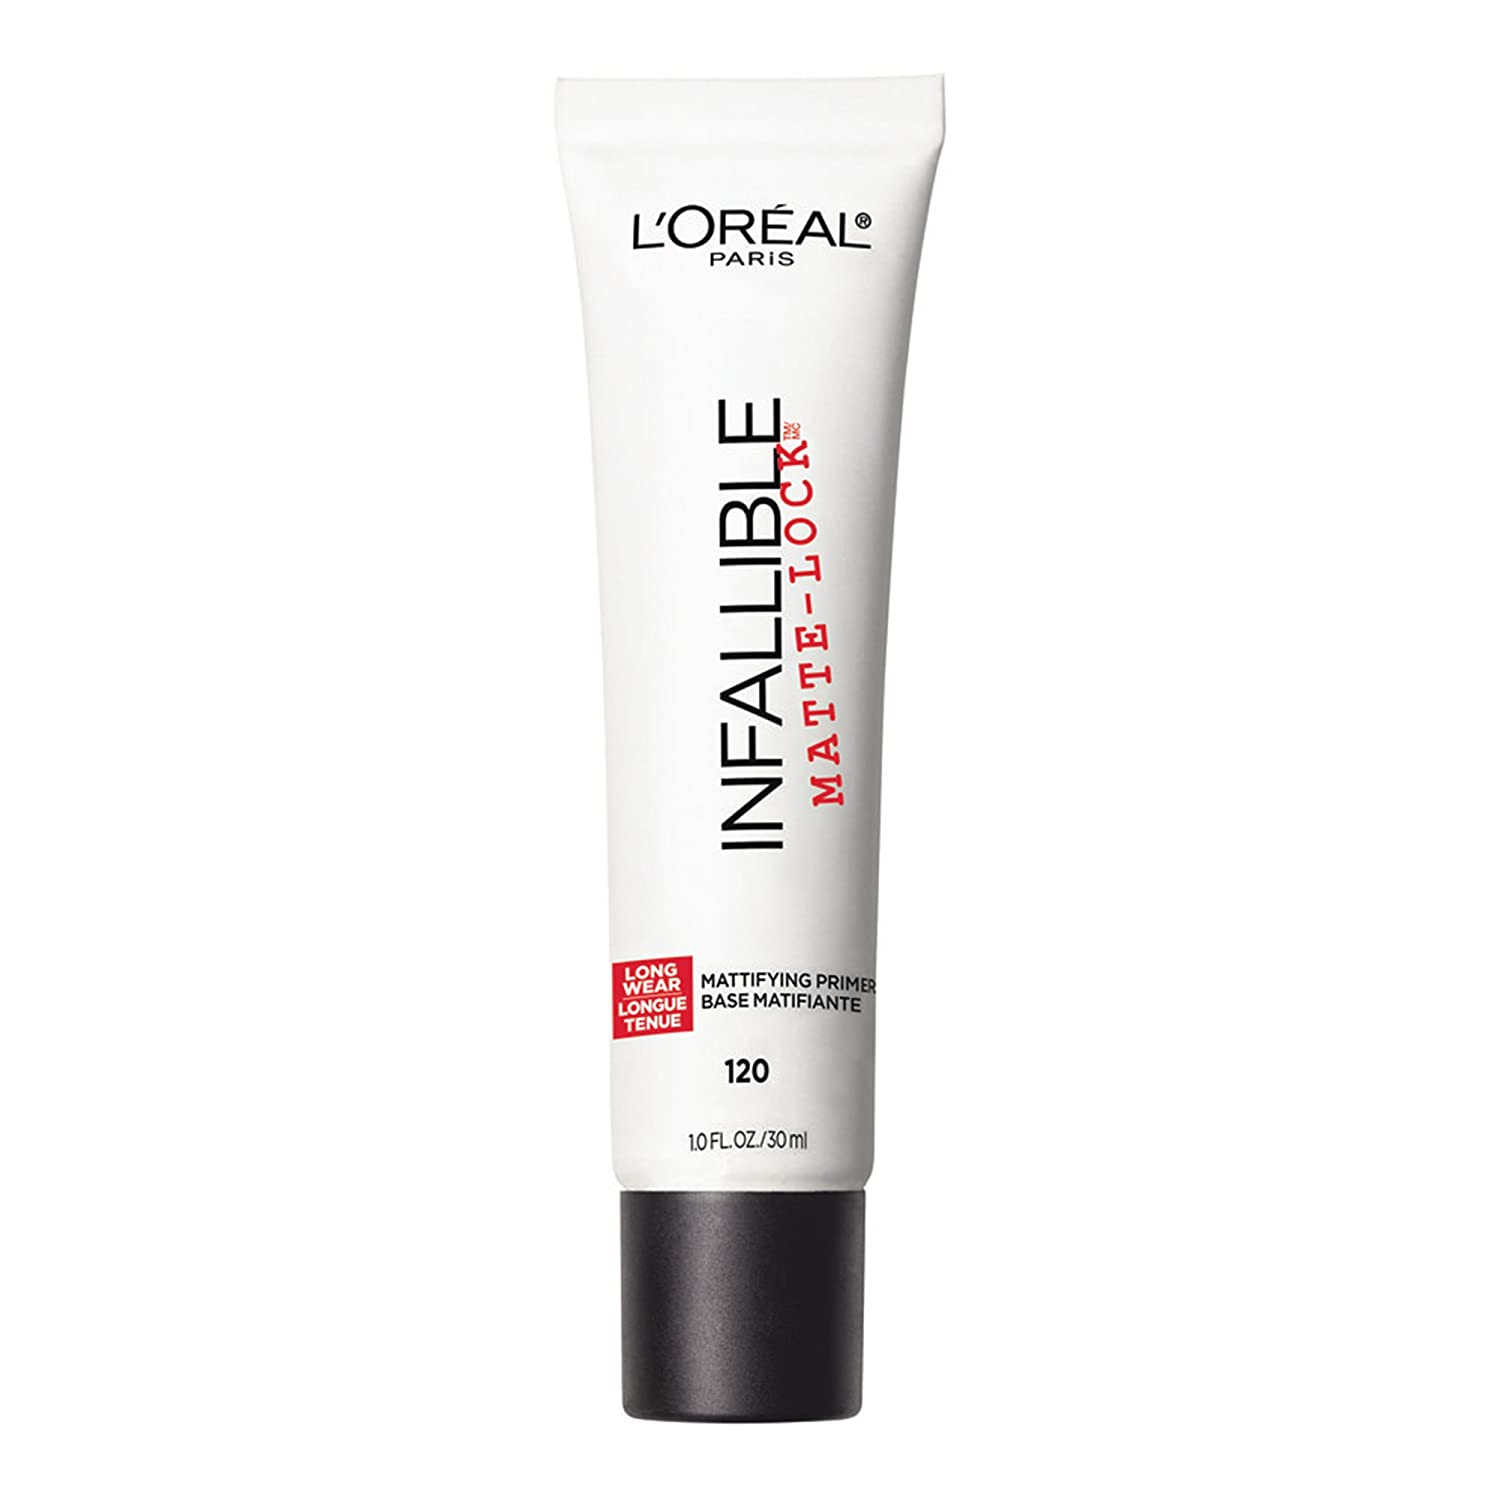 L'Oreal Paris Infallible Matte-lock Mattifying Primer, 30ml L' Oreal Paris